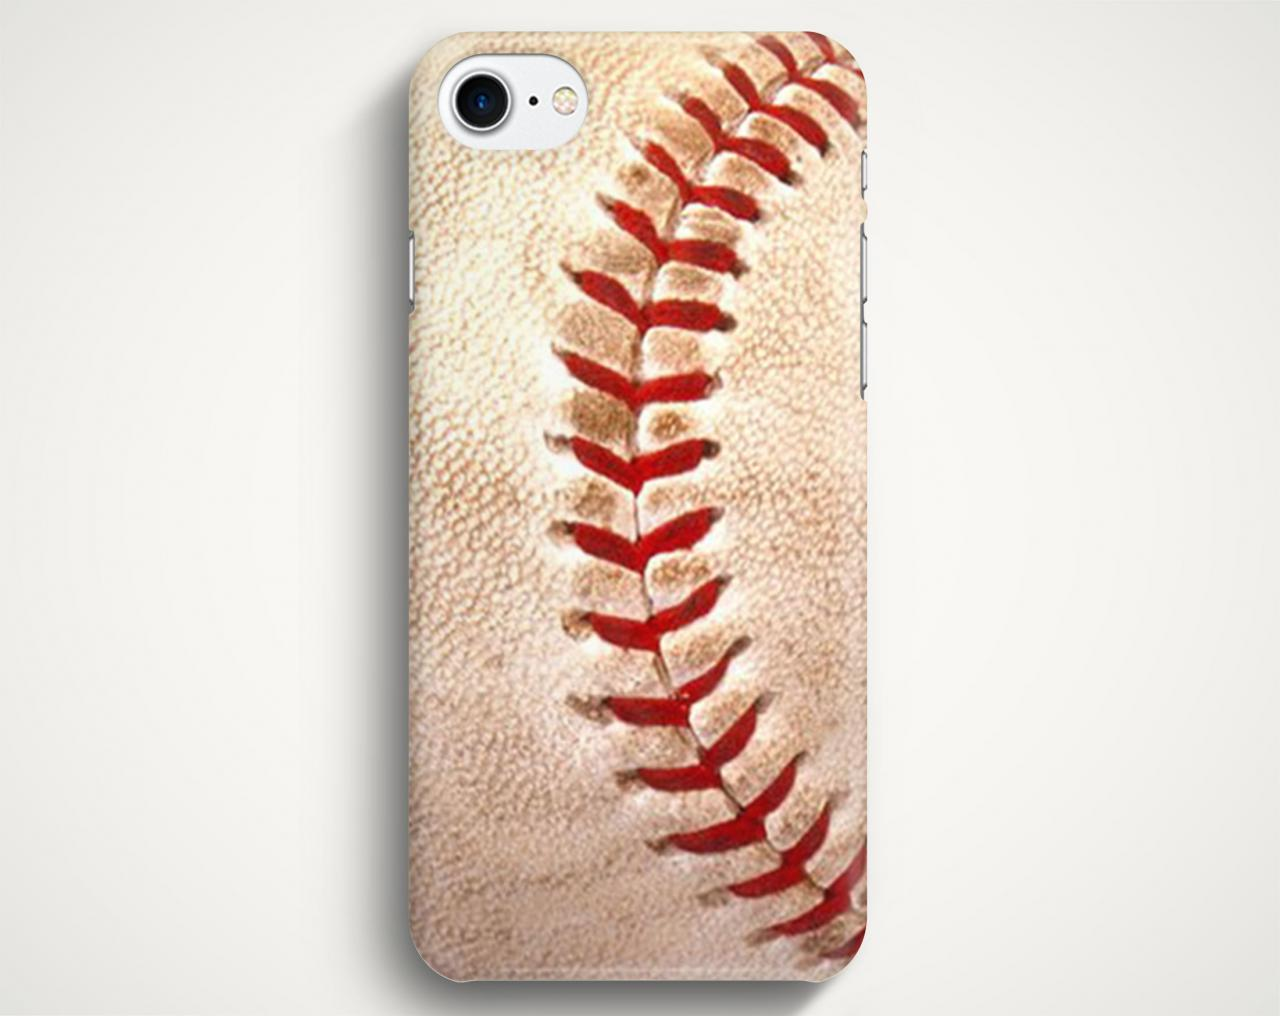 Baseball Case For iPhone 7 iPhone 7 Plus Samsung Galaxy S8 Galaxy S7 Galaxy A3 Galaxy A5 Galaxy A7 LG G6 LG G5 HTC 10